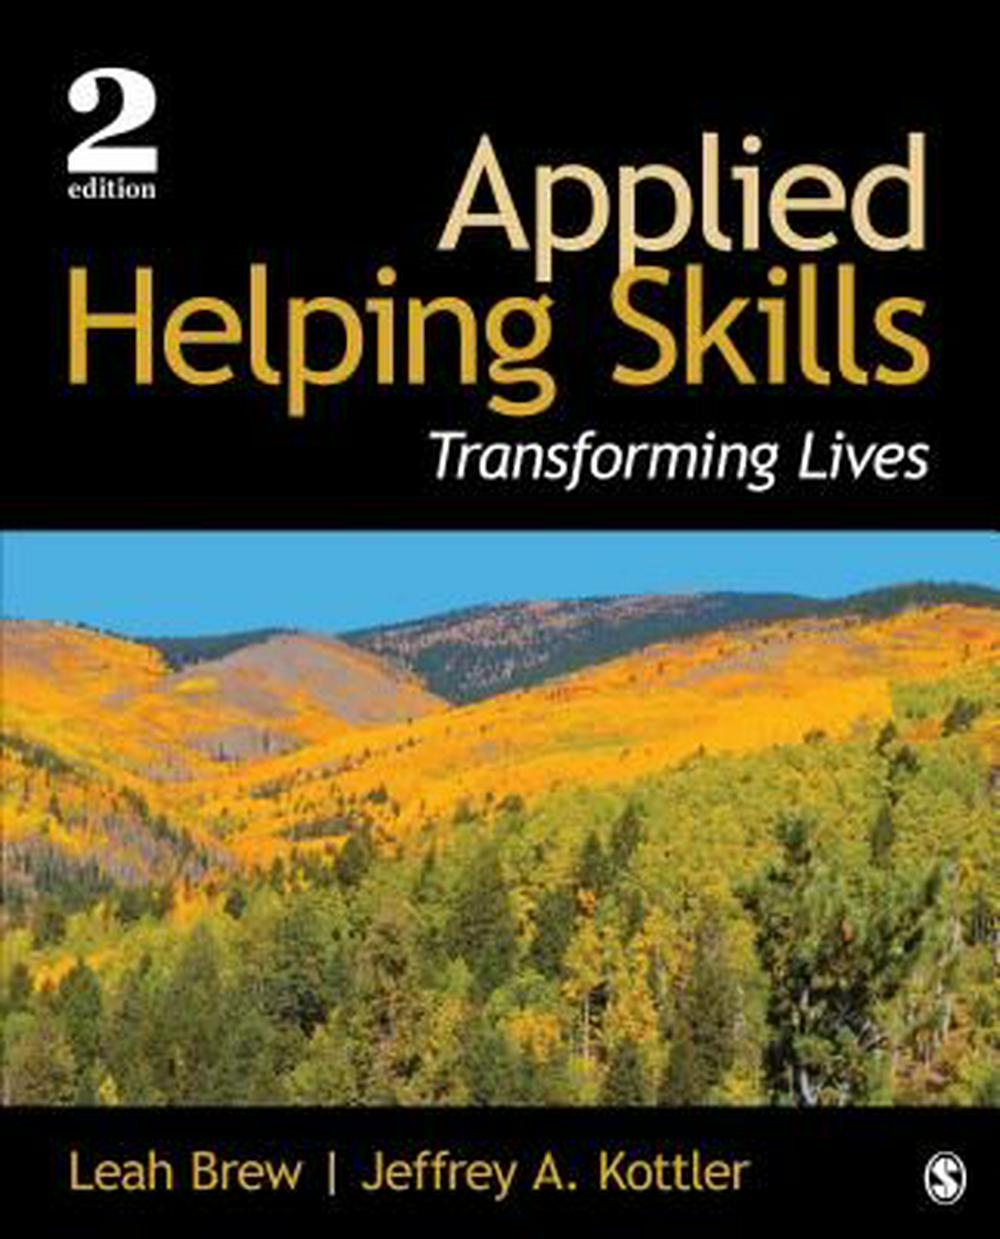 Applied Helping SkillsTransforming Lives by Leah M. Brew,Jeffrey A. Kottler, ISBN: 9781483375694